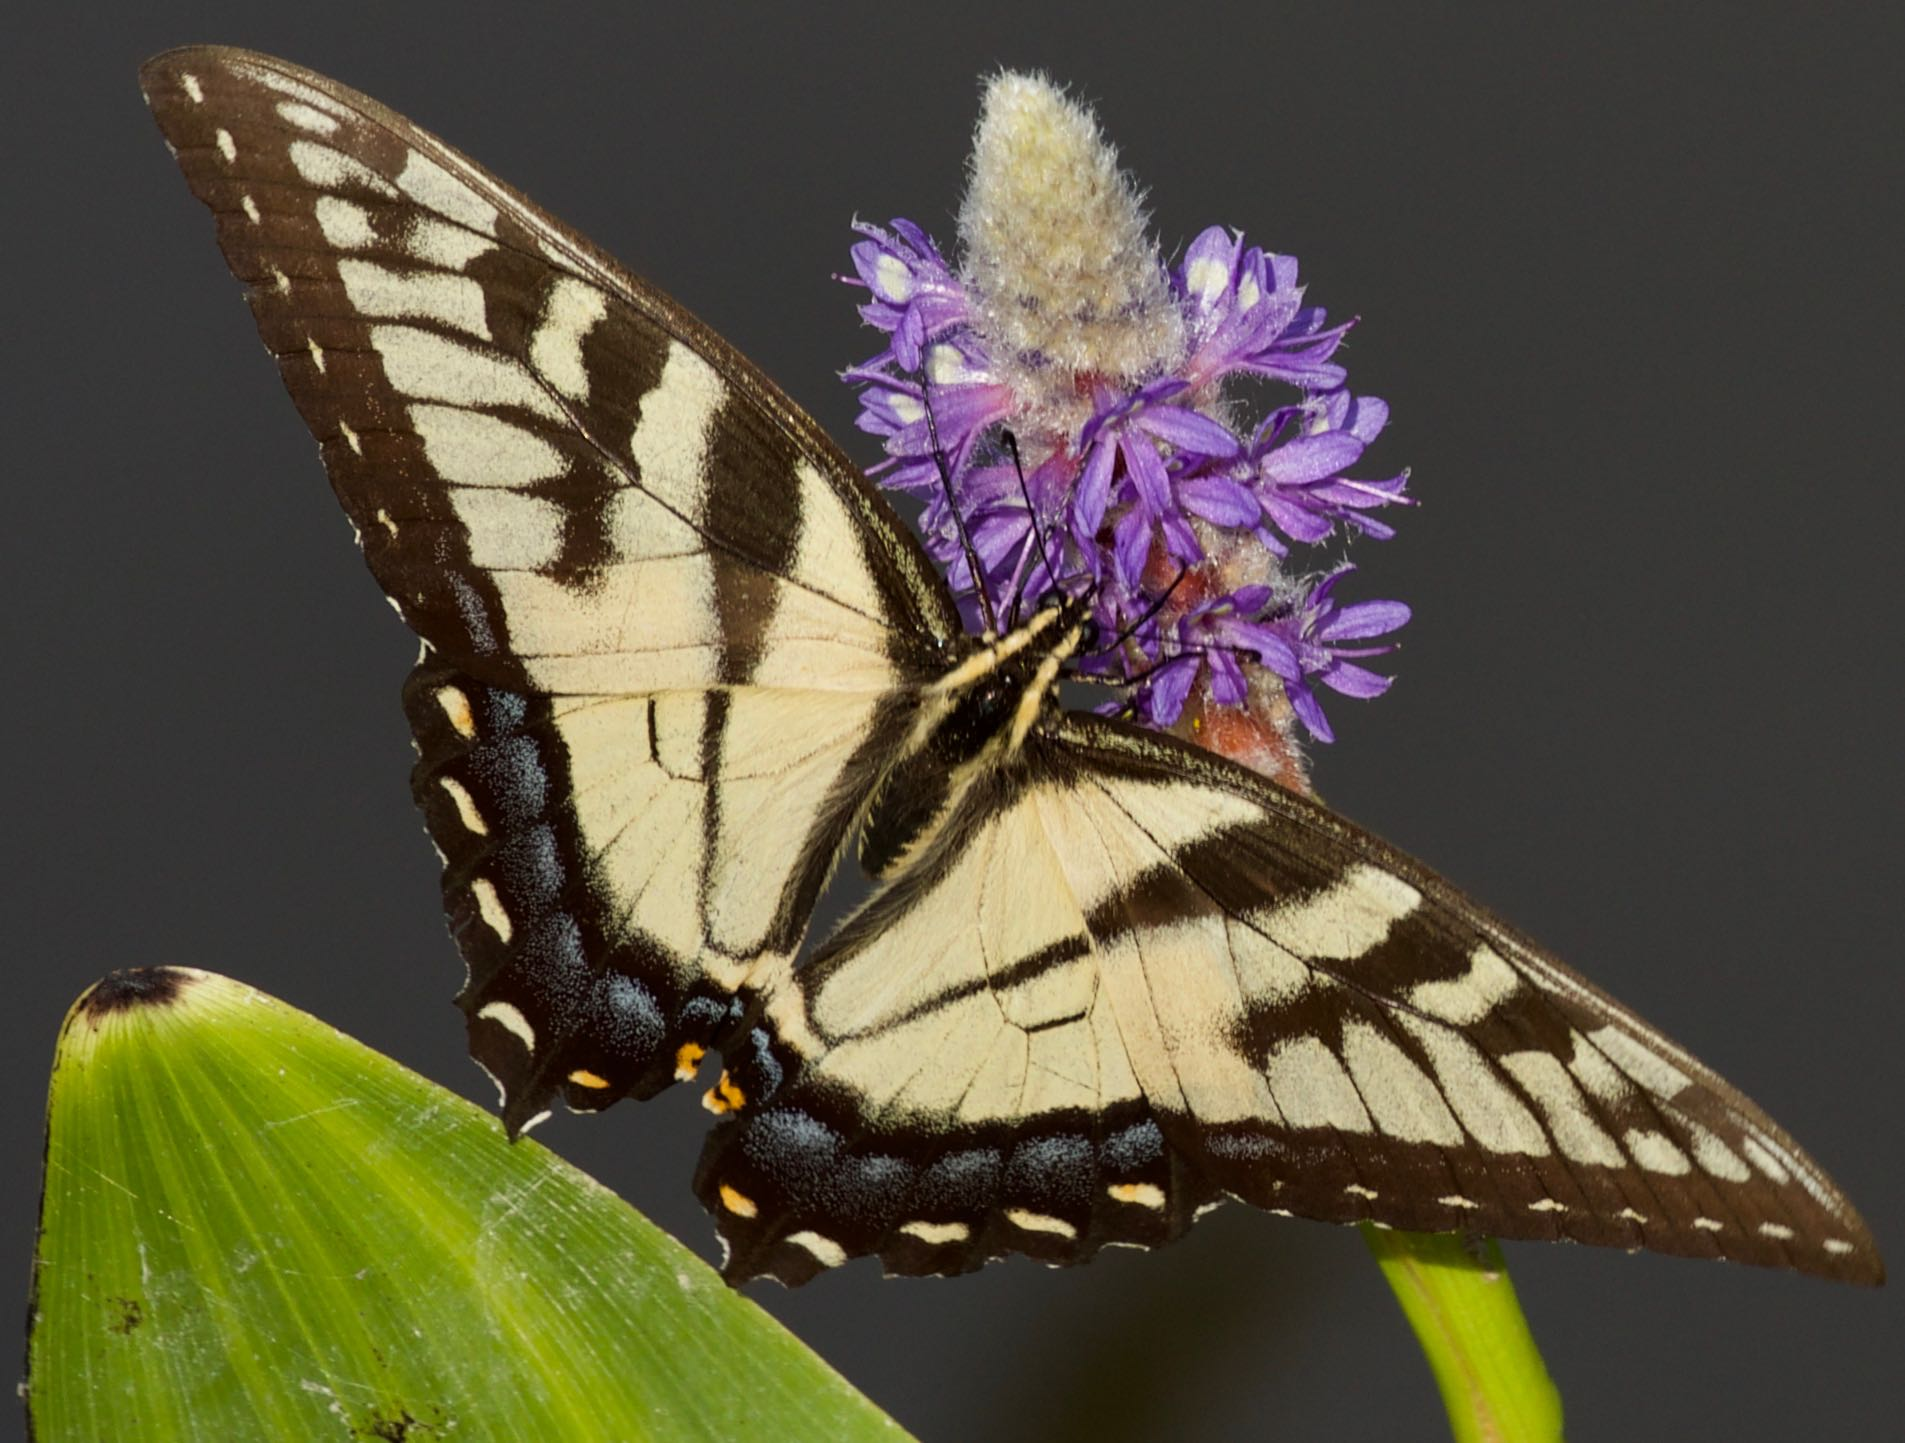 The Year of the Swallowtail